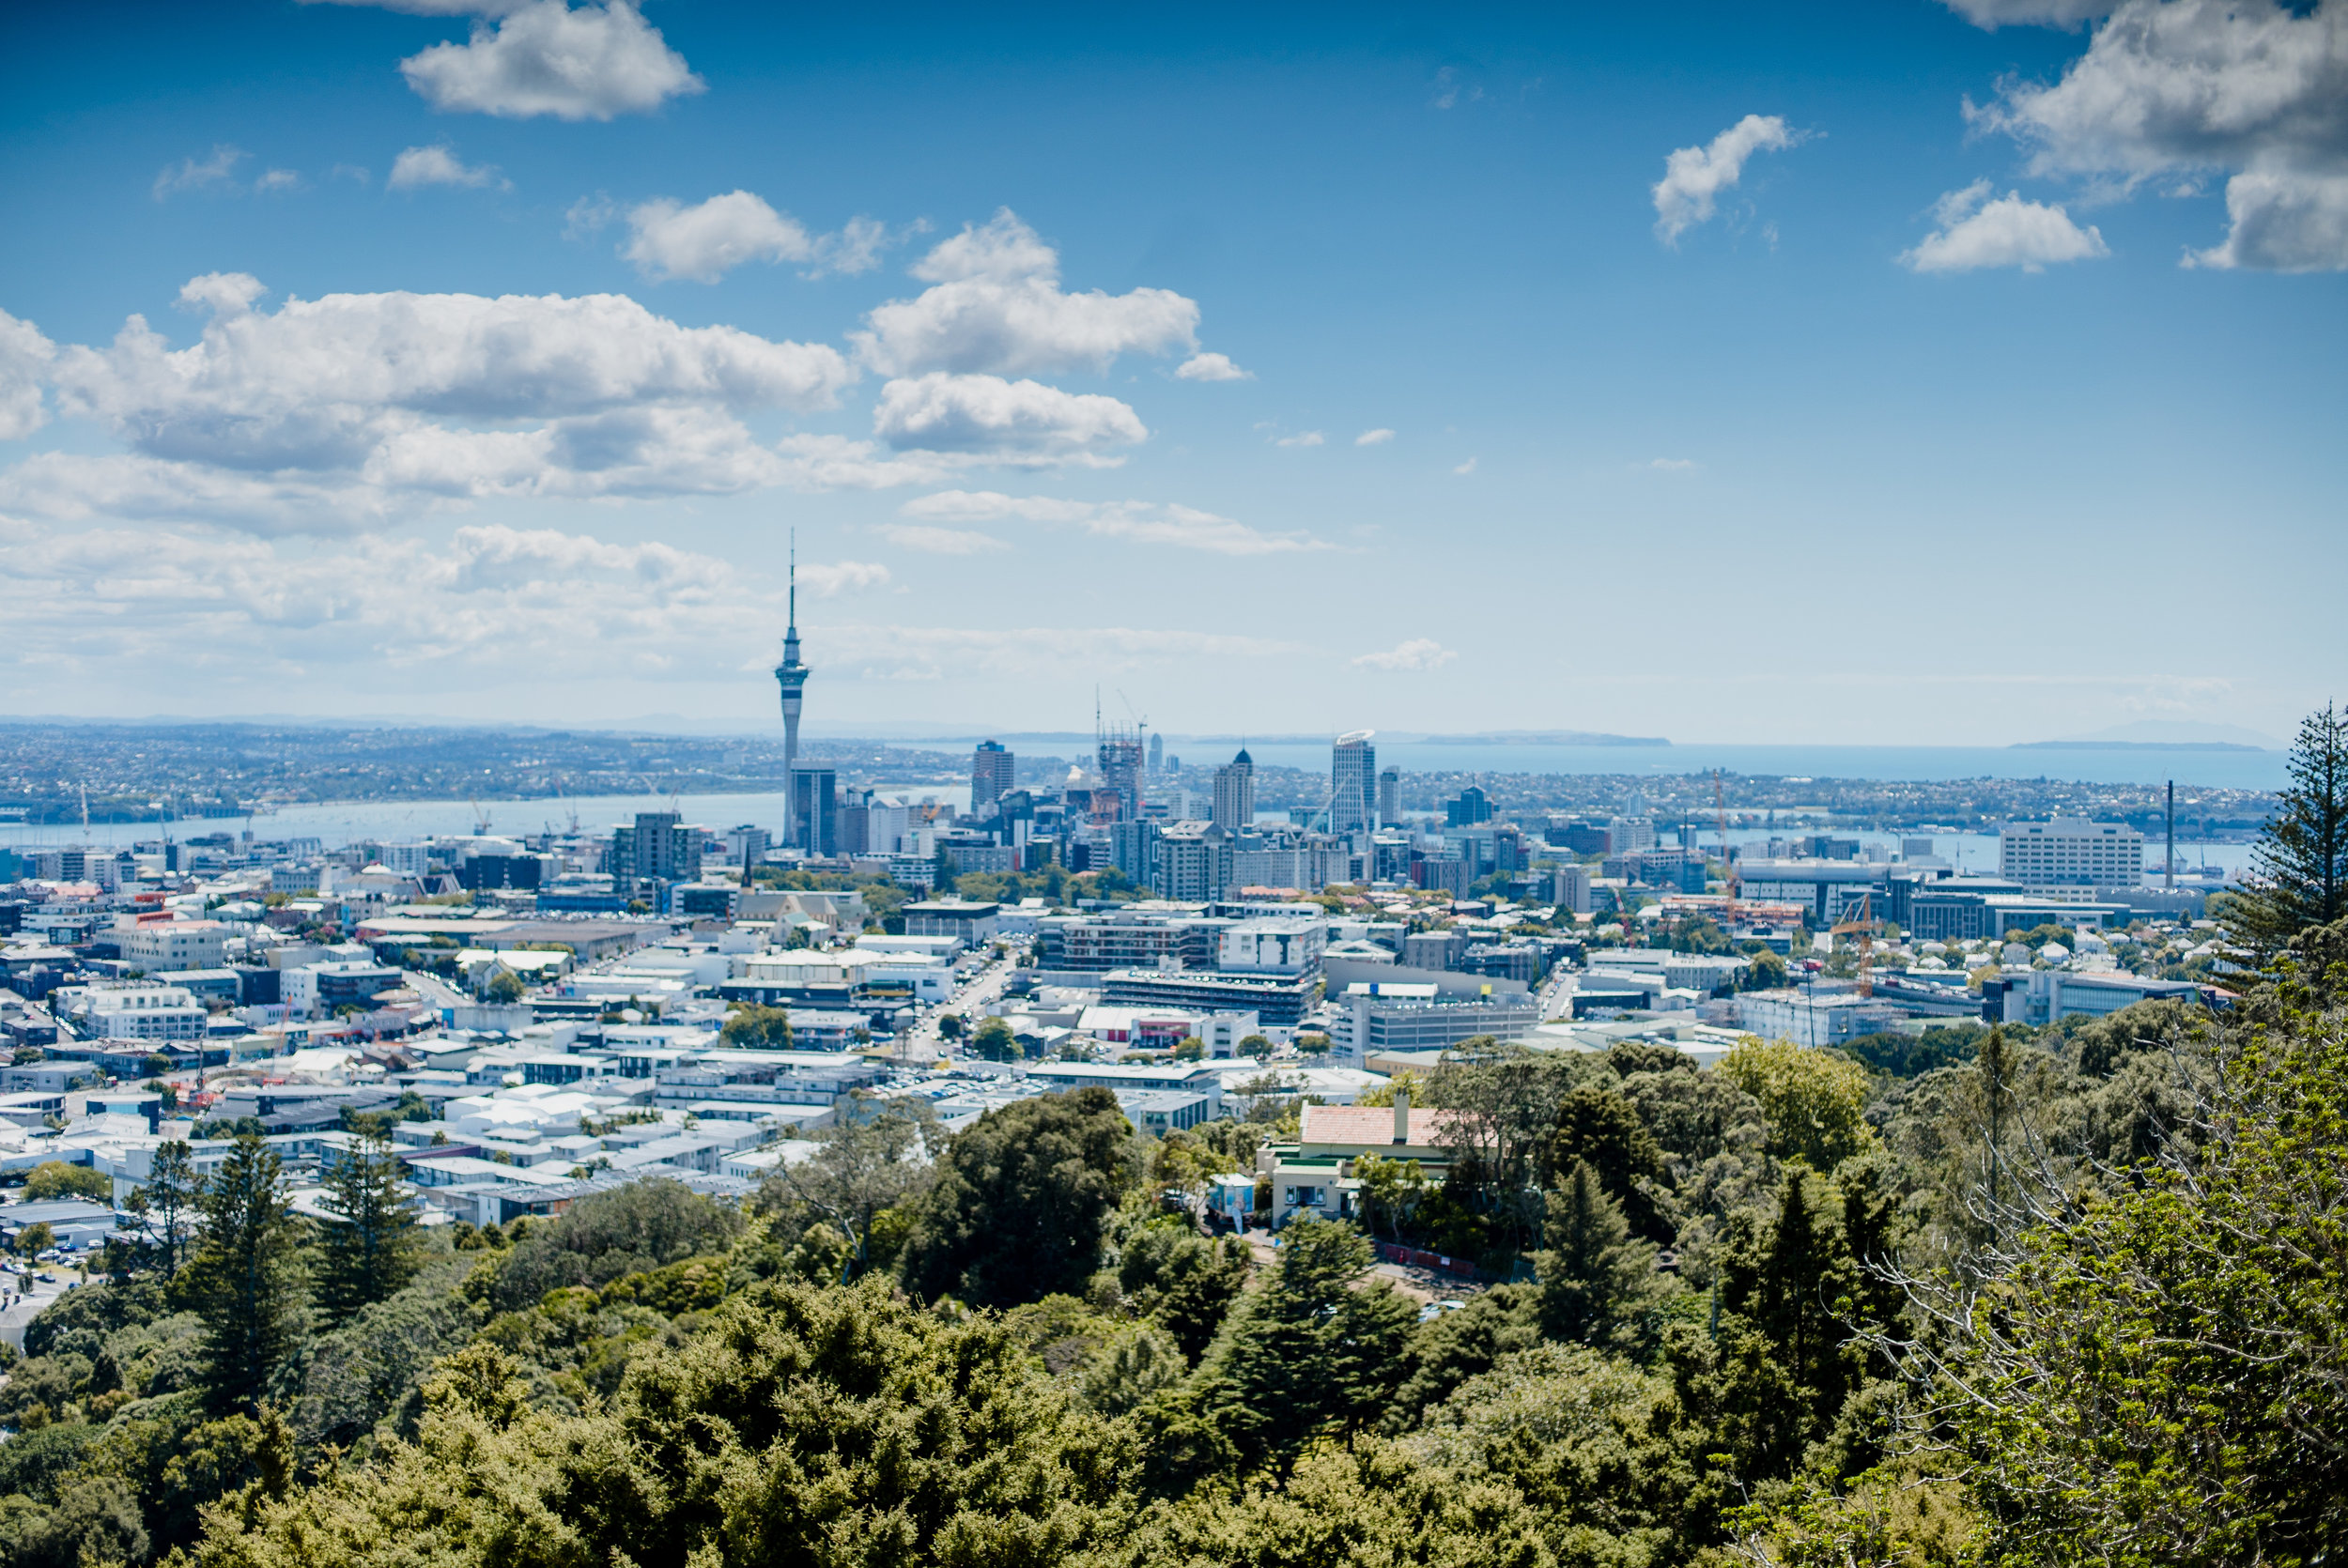 AUCKLAND - One day in the modern, hilly, ocean capital of the North Island